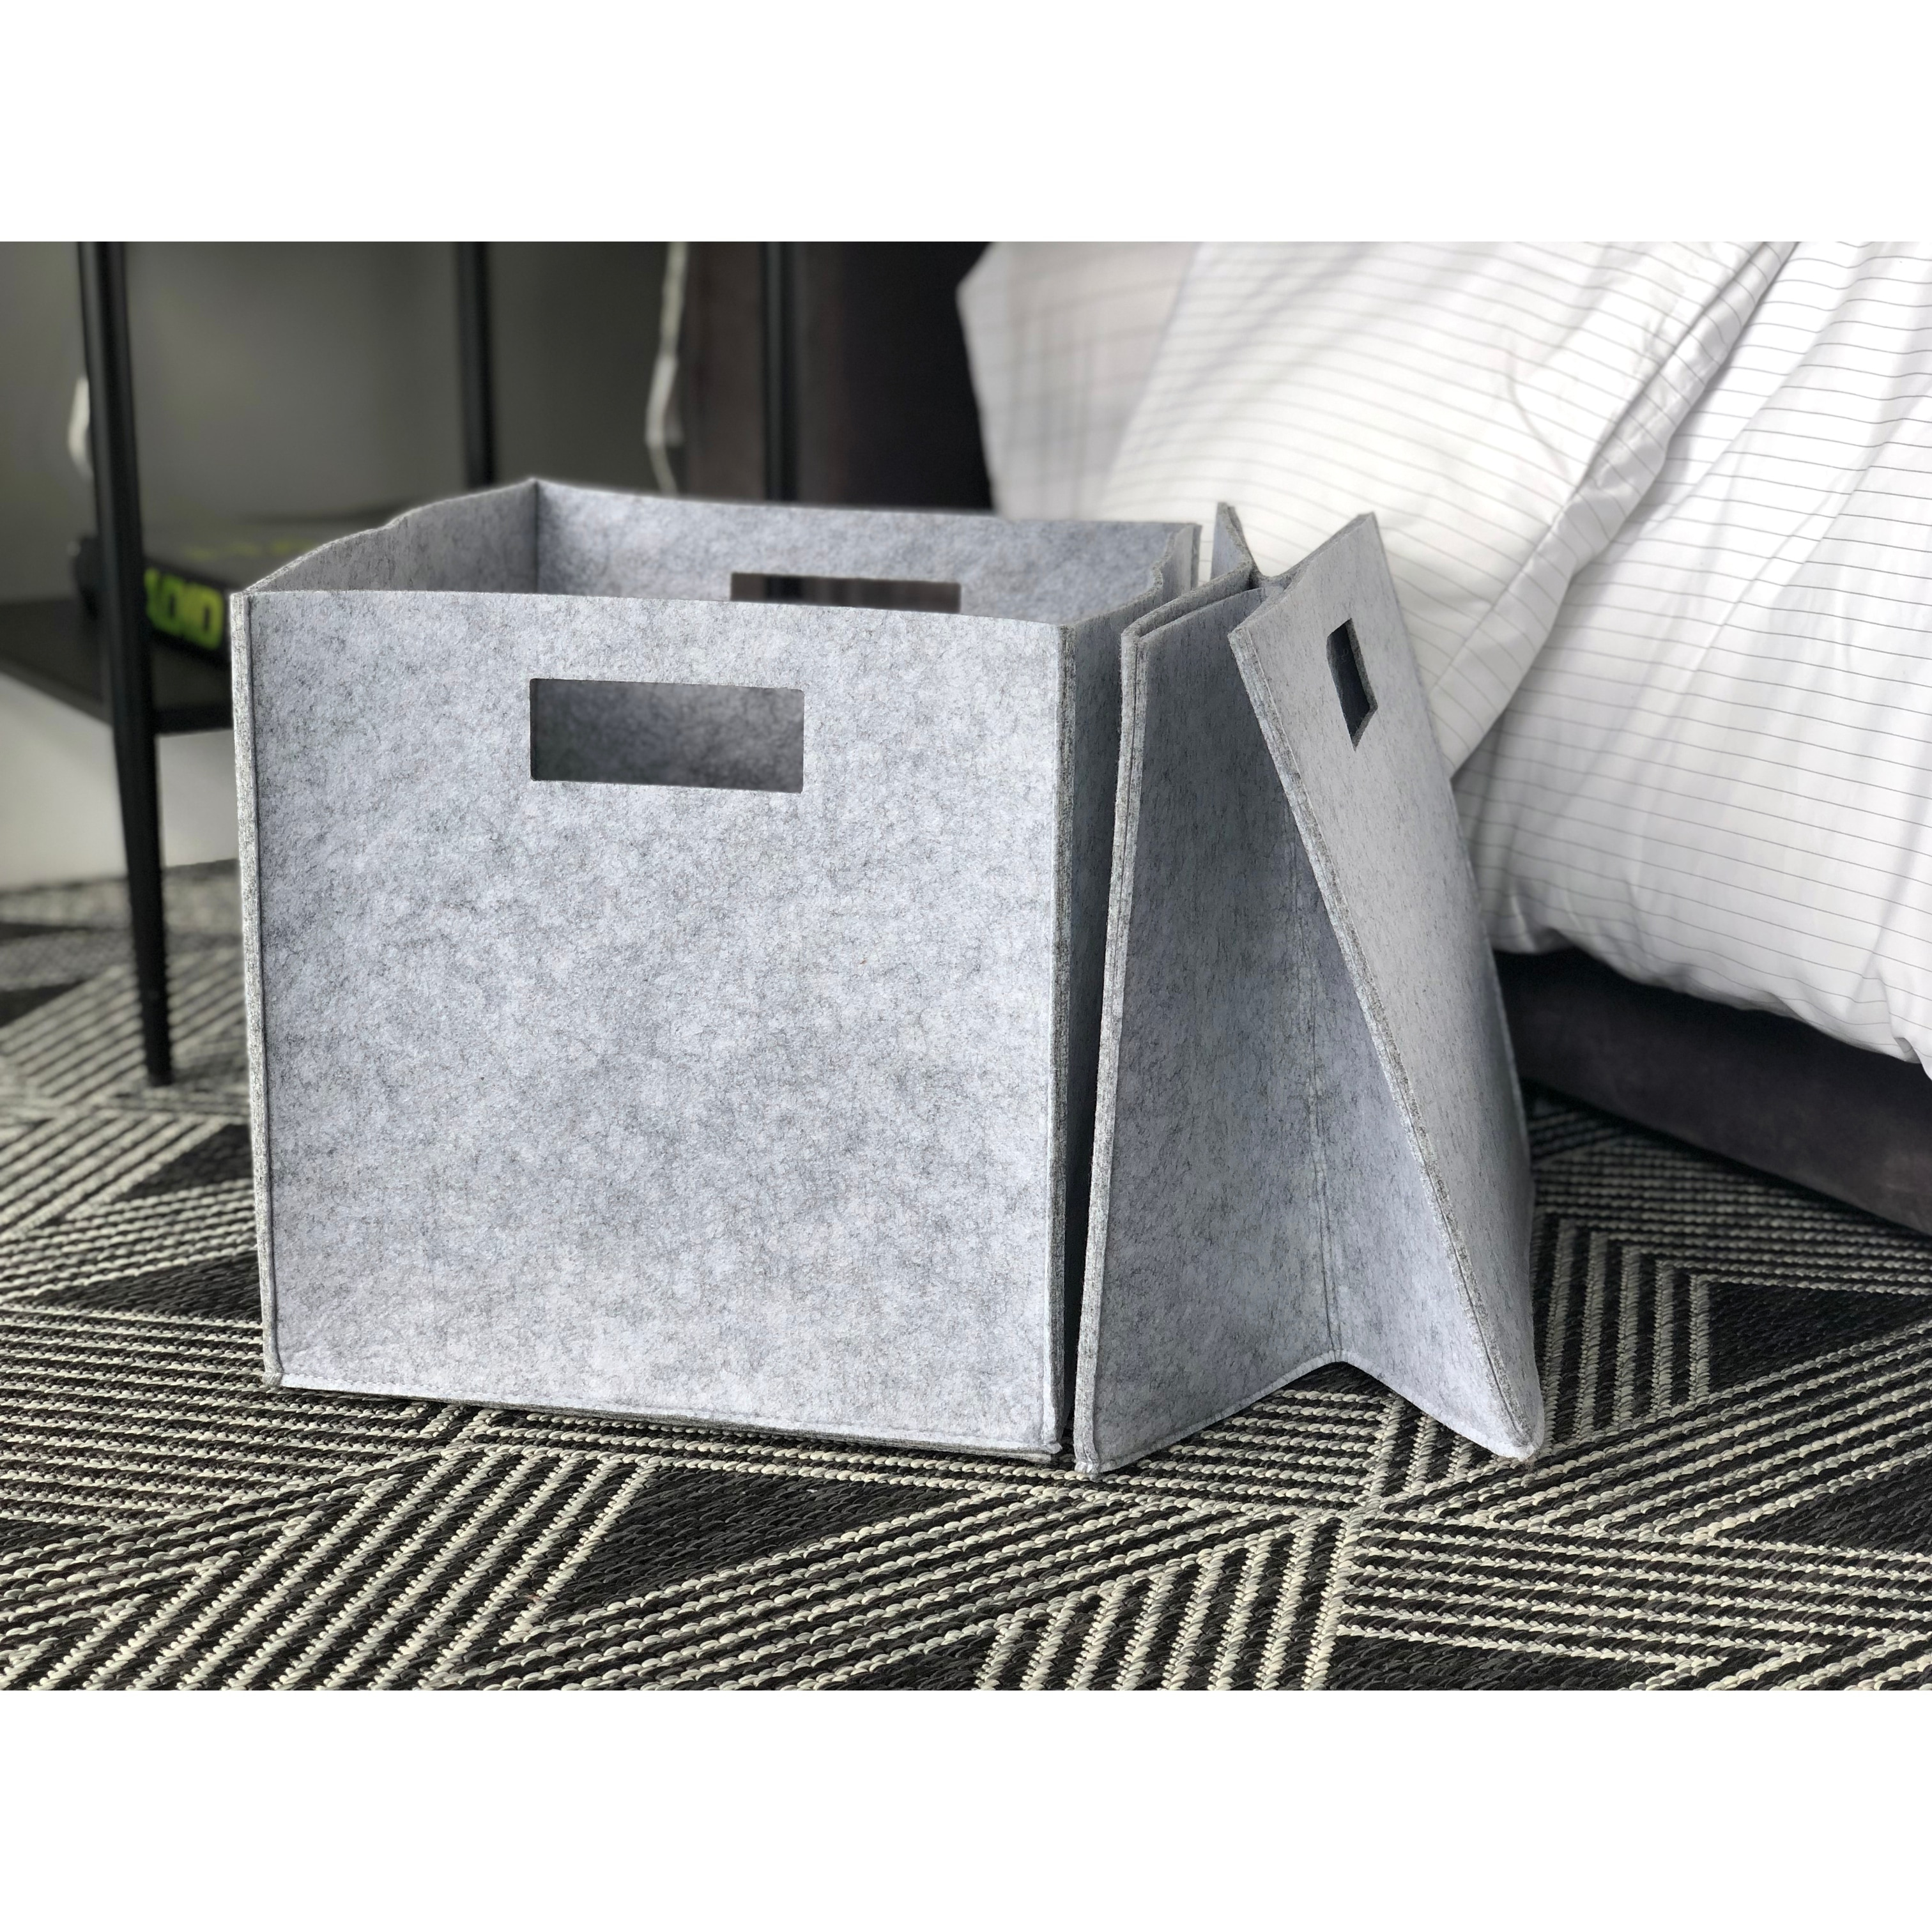 2 Piece Felt Fabric Storage Cube By Handcrafted 4 Home 12 X On Free Shipping Orders Over 45 28116246